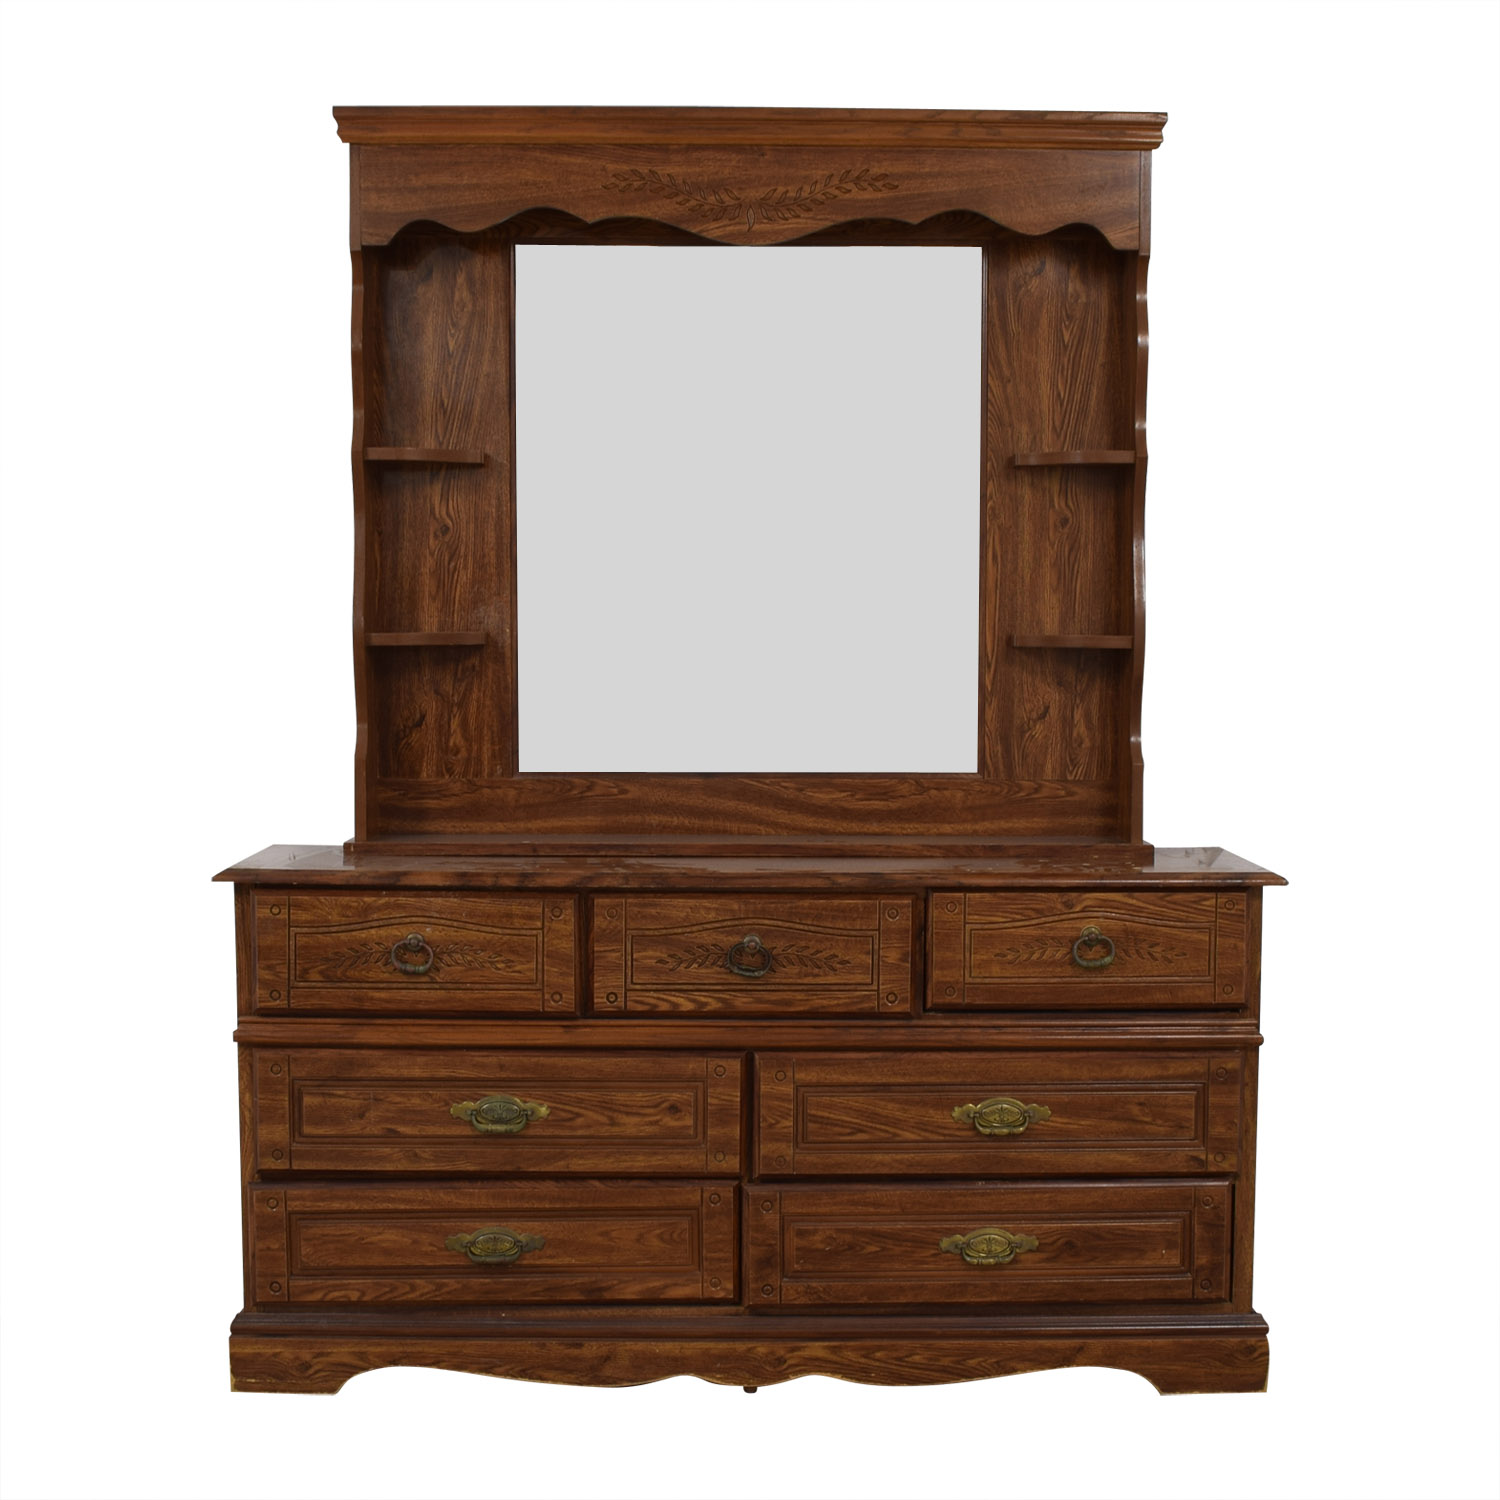 Seven-Drawer Wood Dresser with Mirror and Shelves nyc